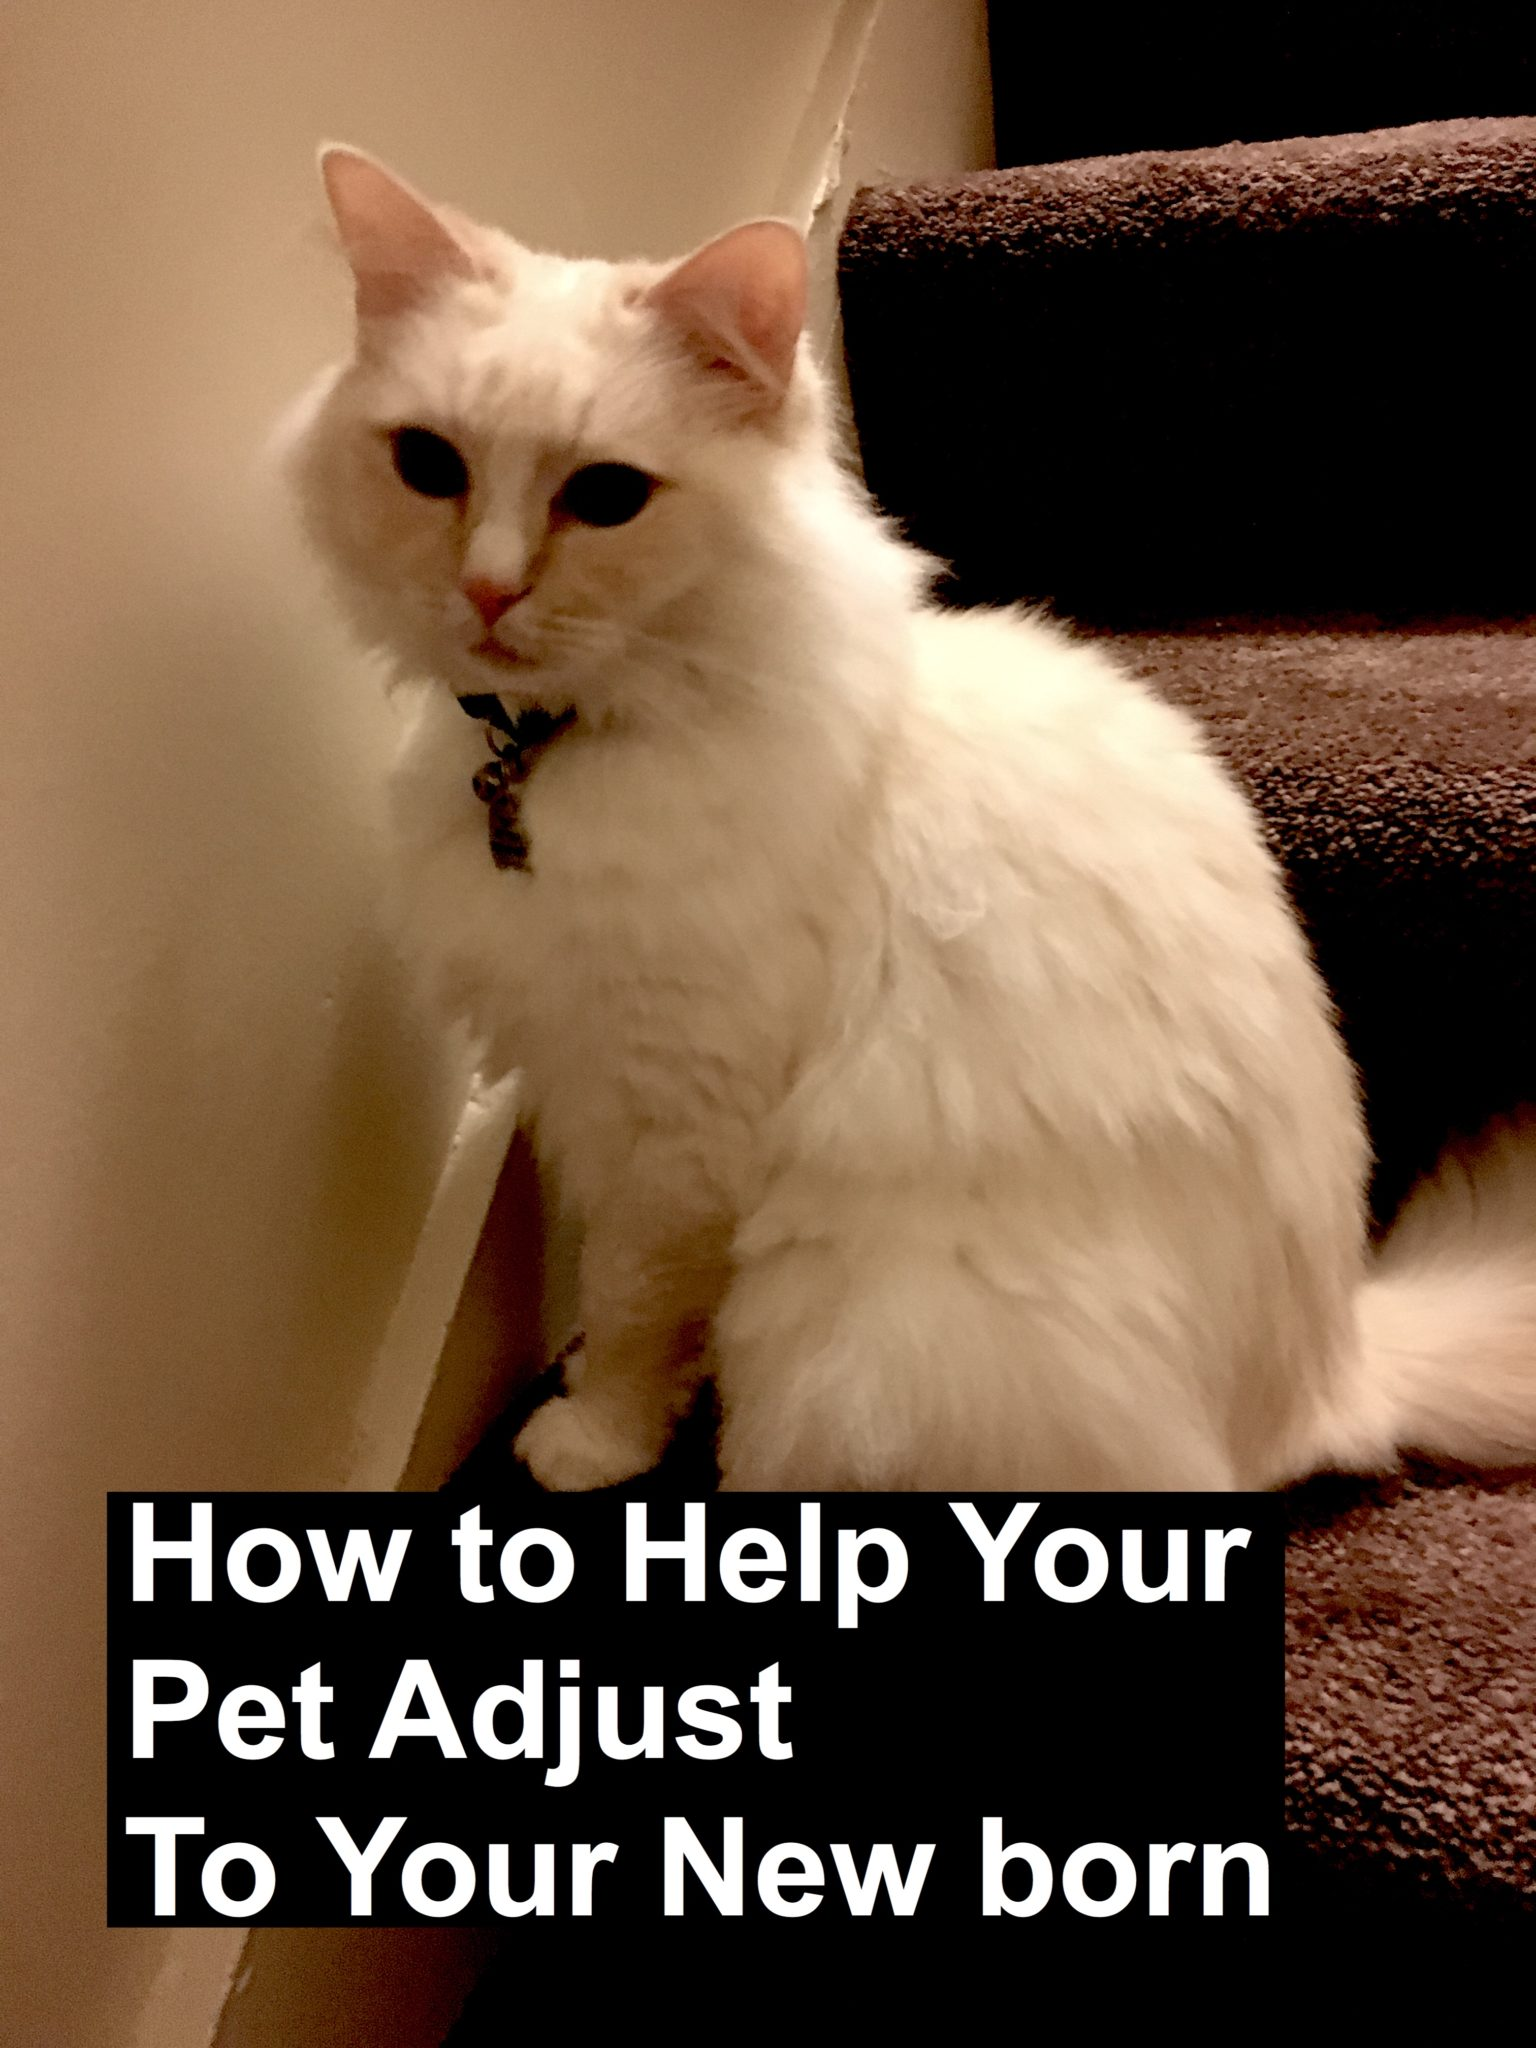 Mellow and How To Help Your Pet pin